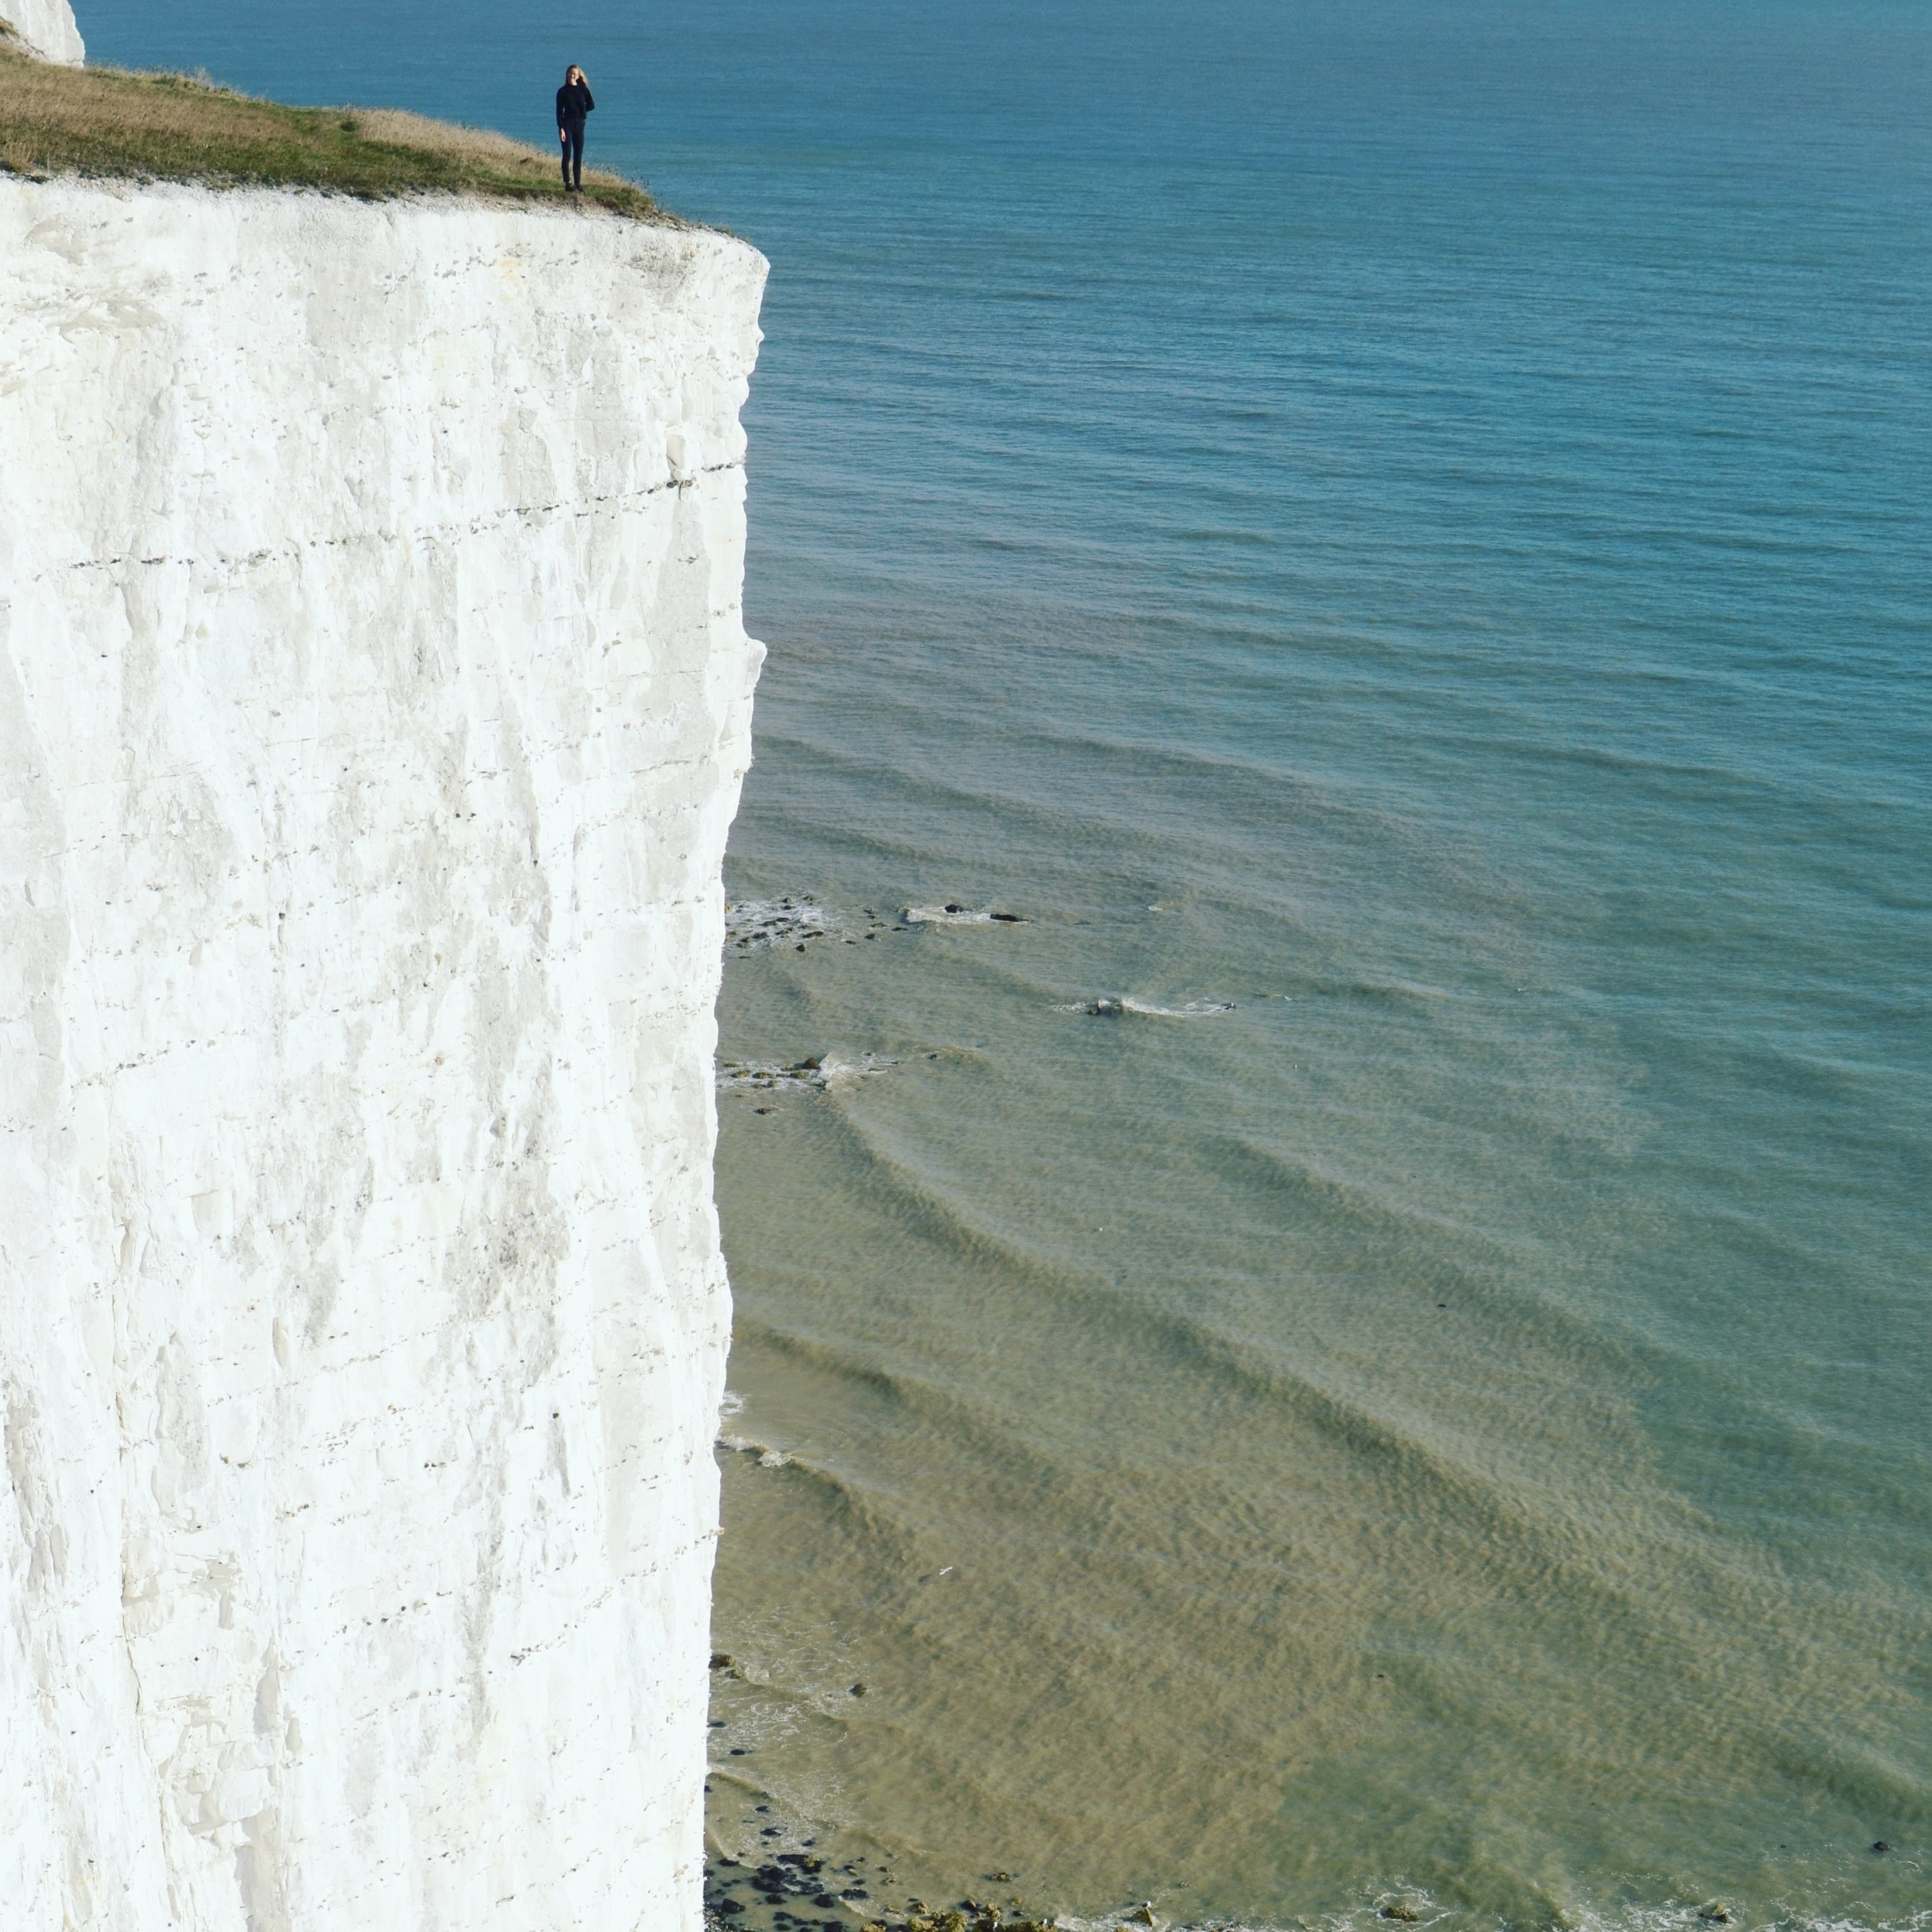 Allie standing at the edge of the White Cliffs of Dover.